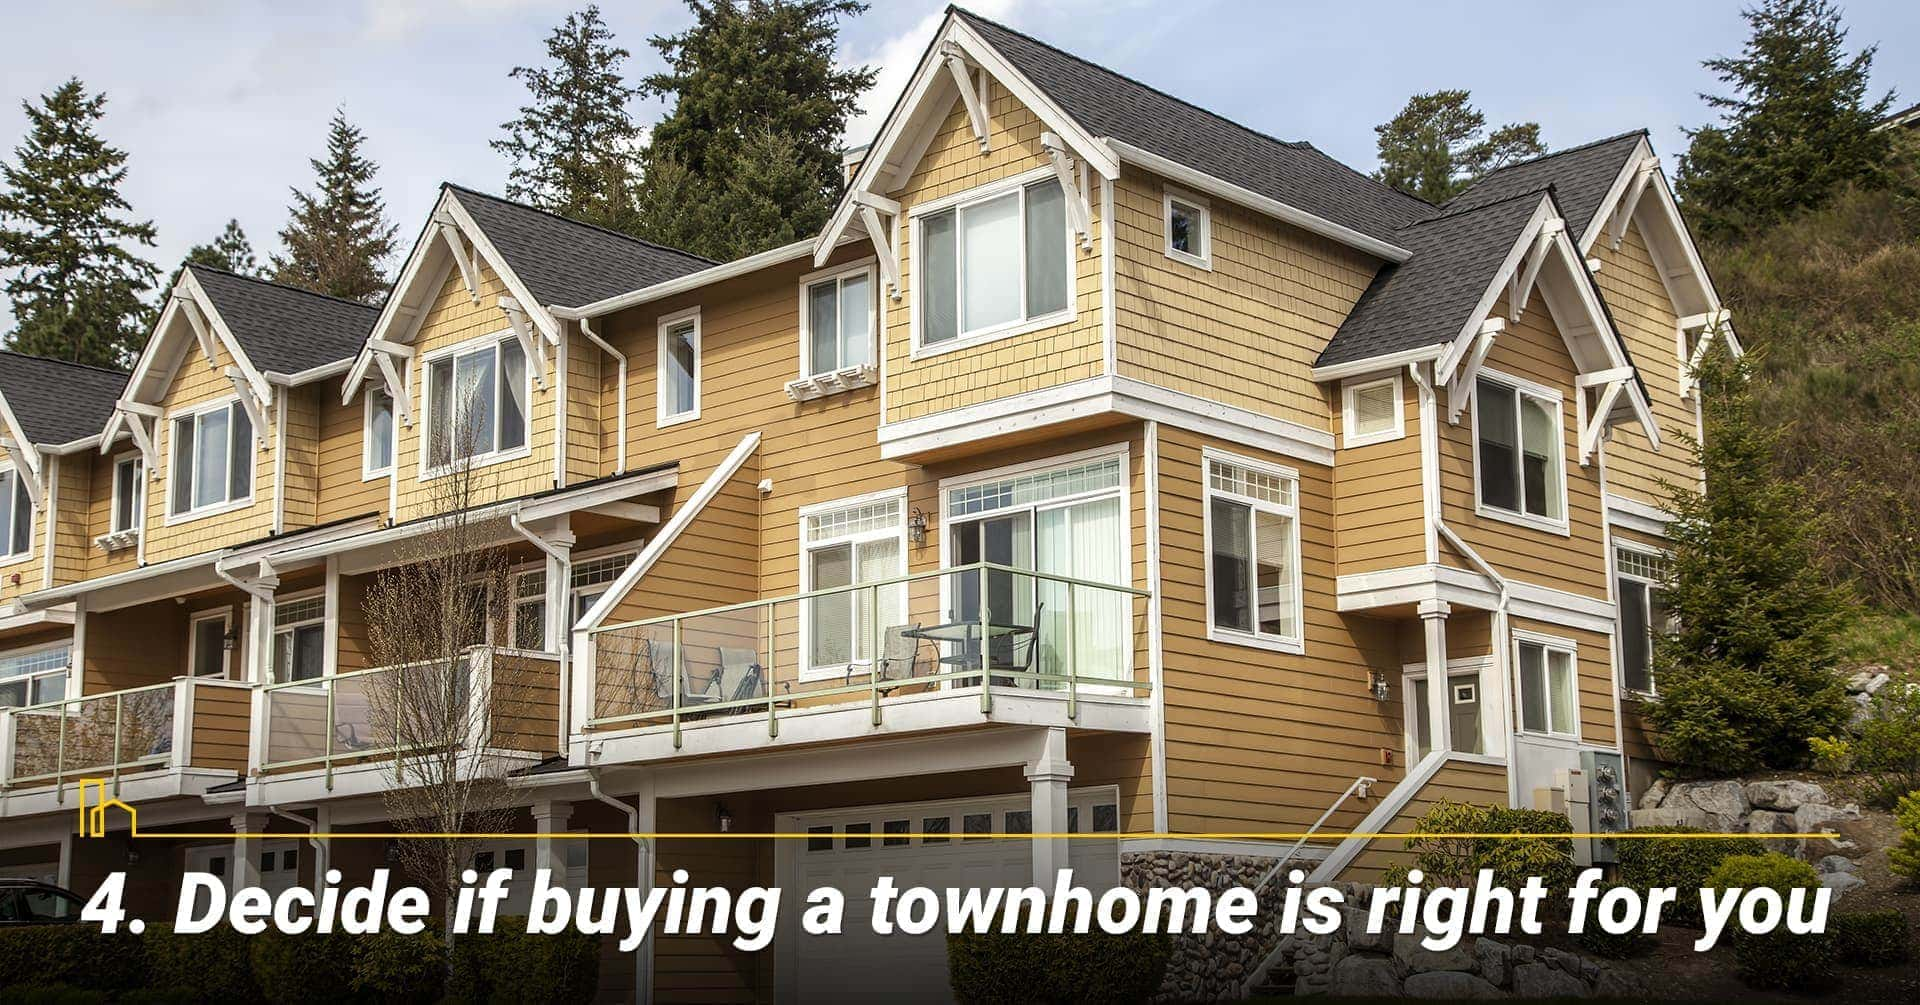 Decide if buying a townhome is right for you, reasons to buy a townhome